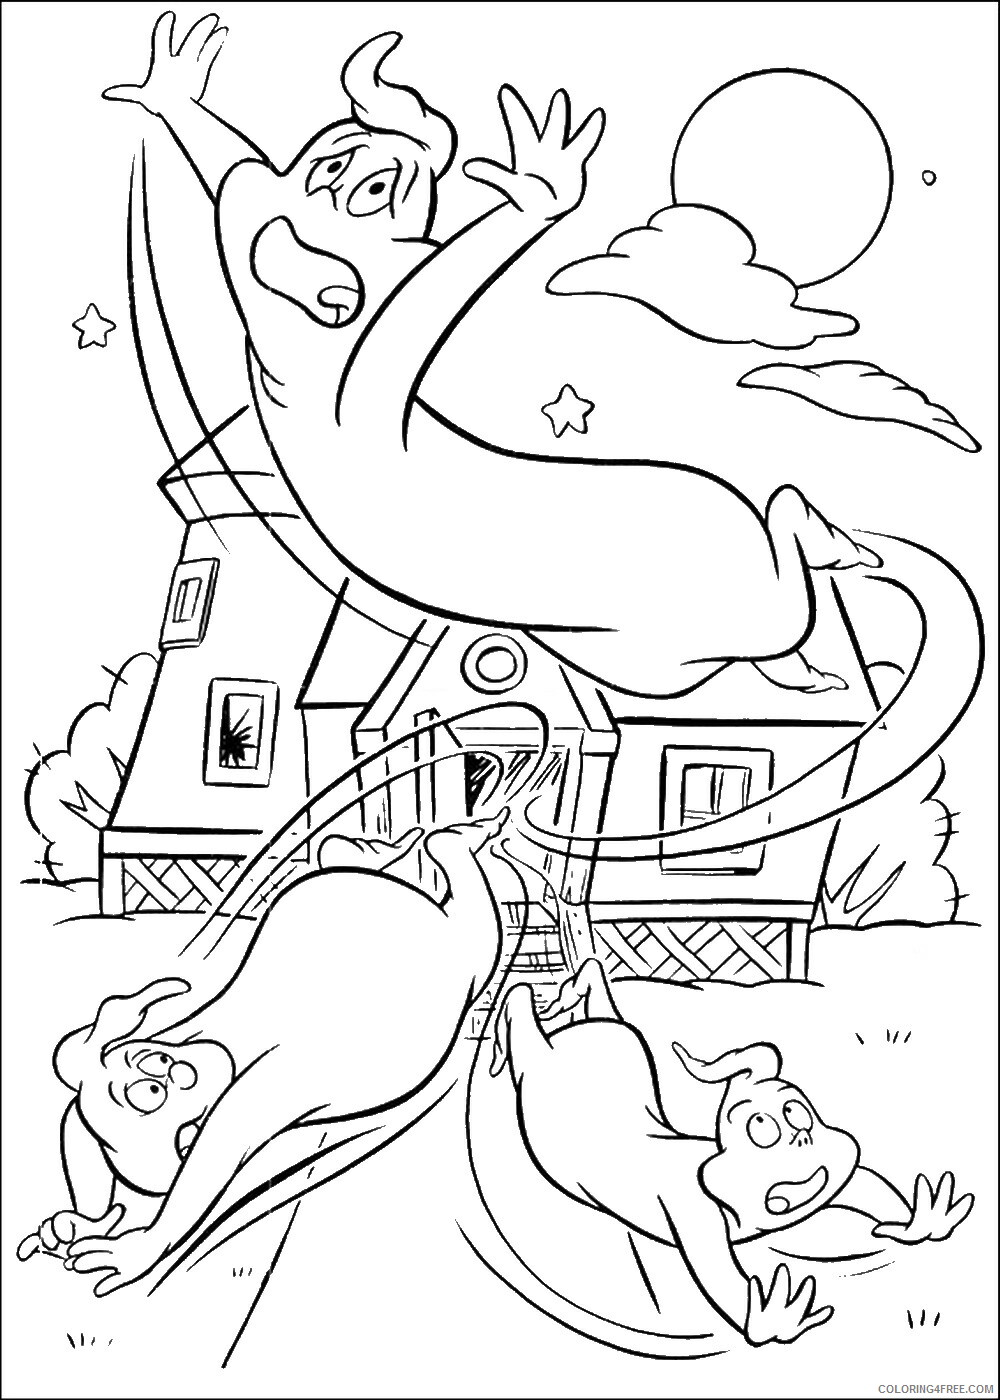 Casper Coloring Pages TV Film casper_cl_24 Printable 2020 02017 Coloring4free